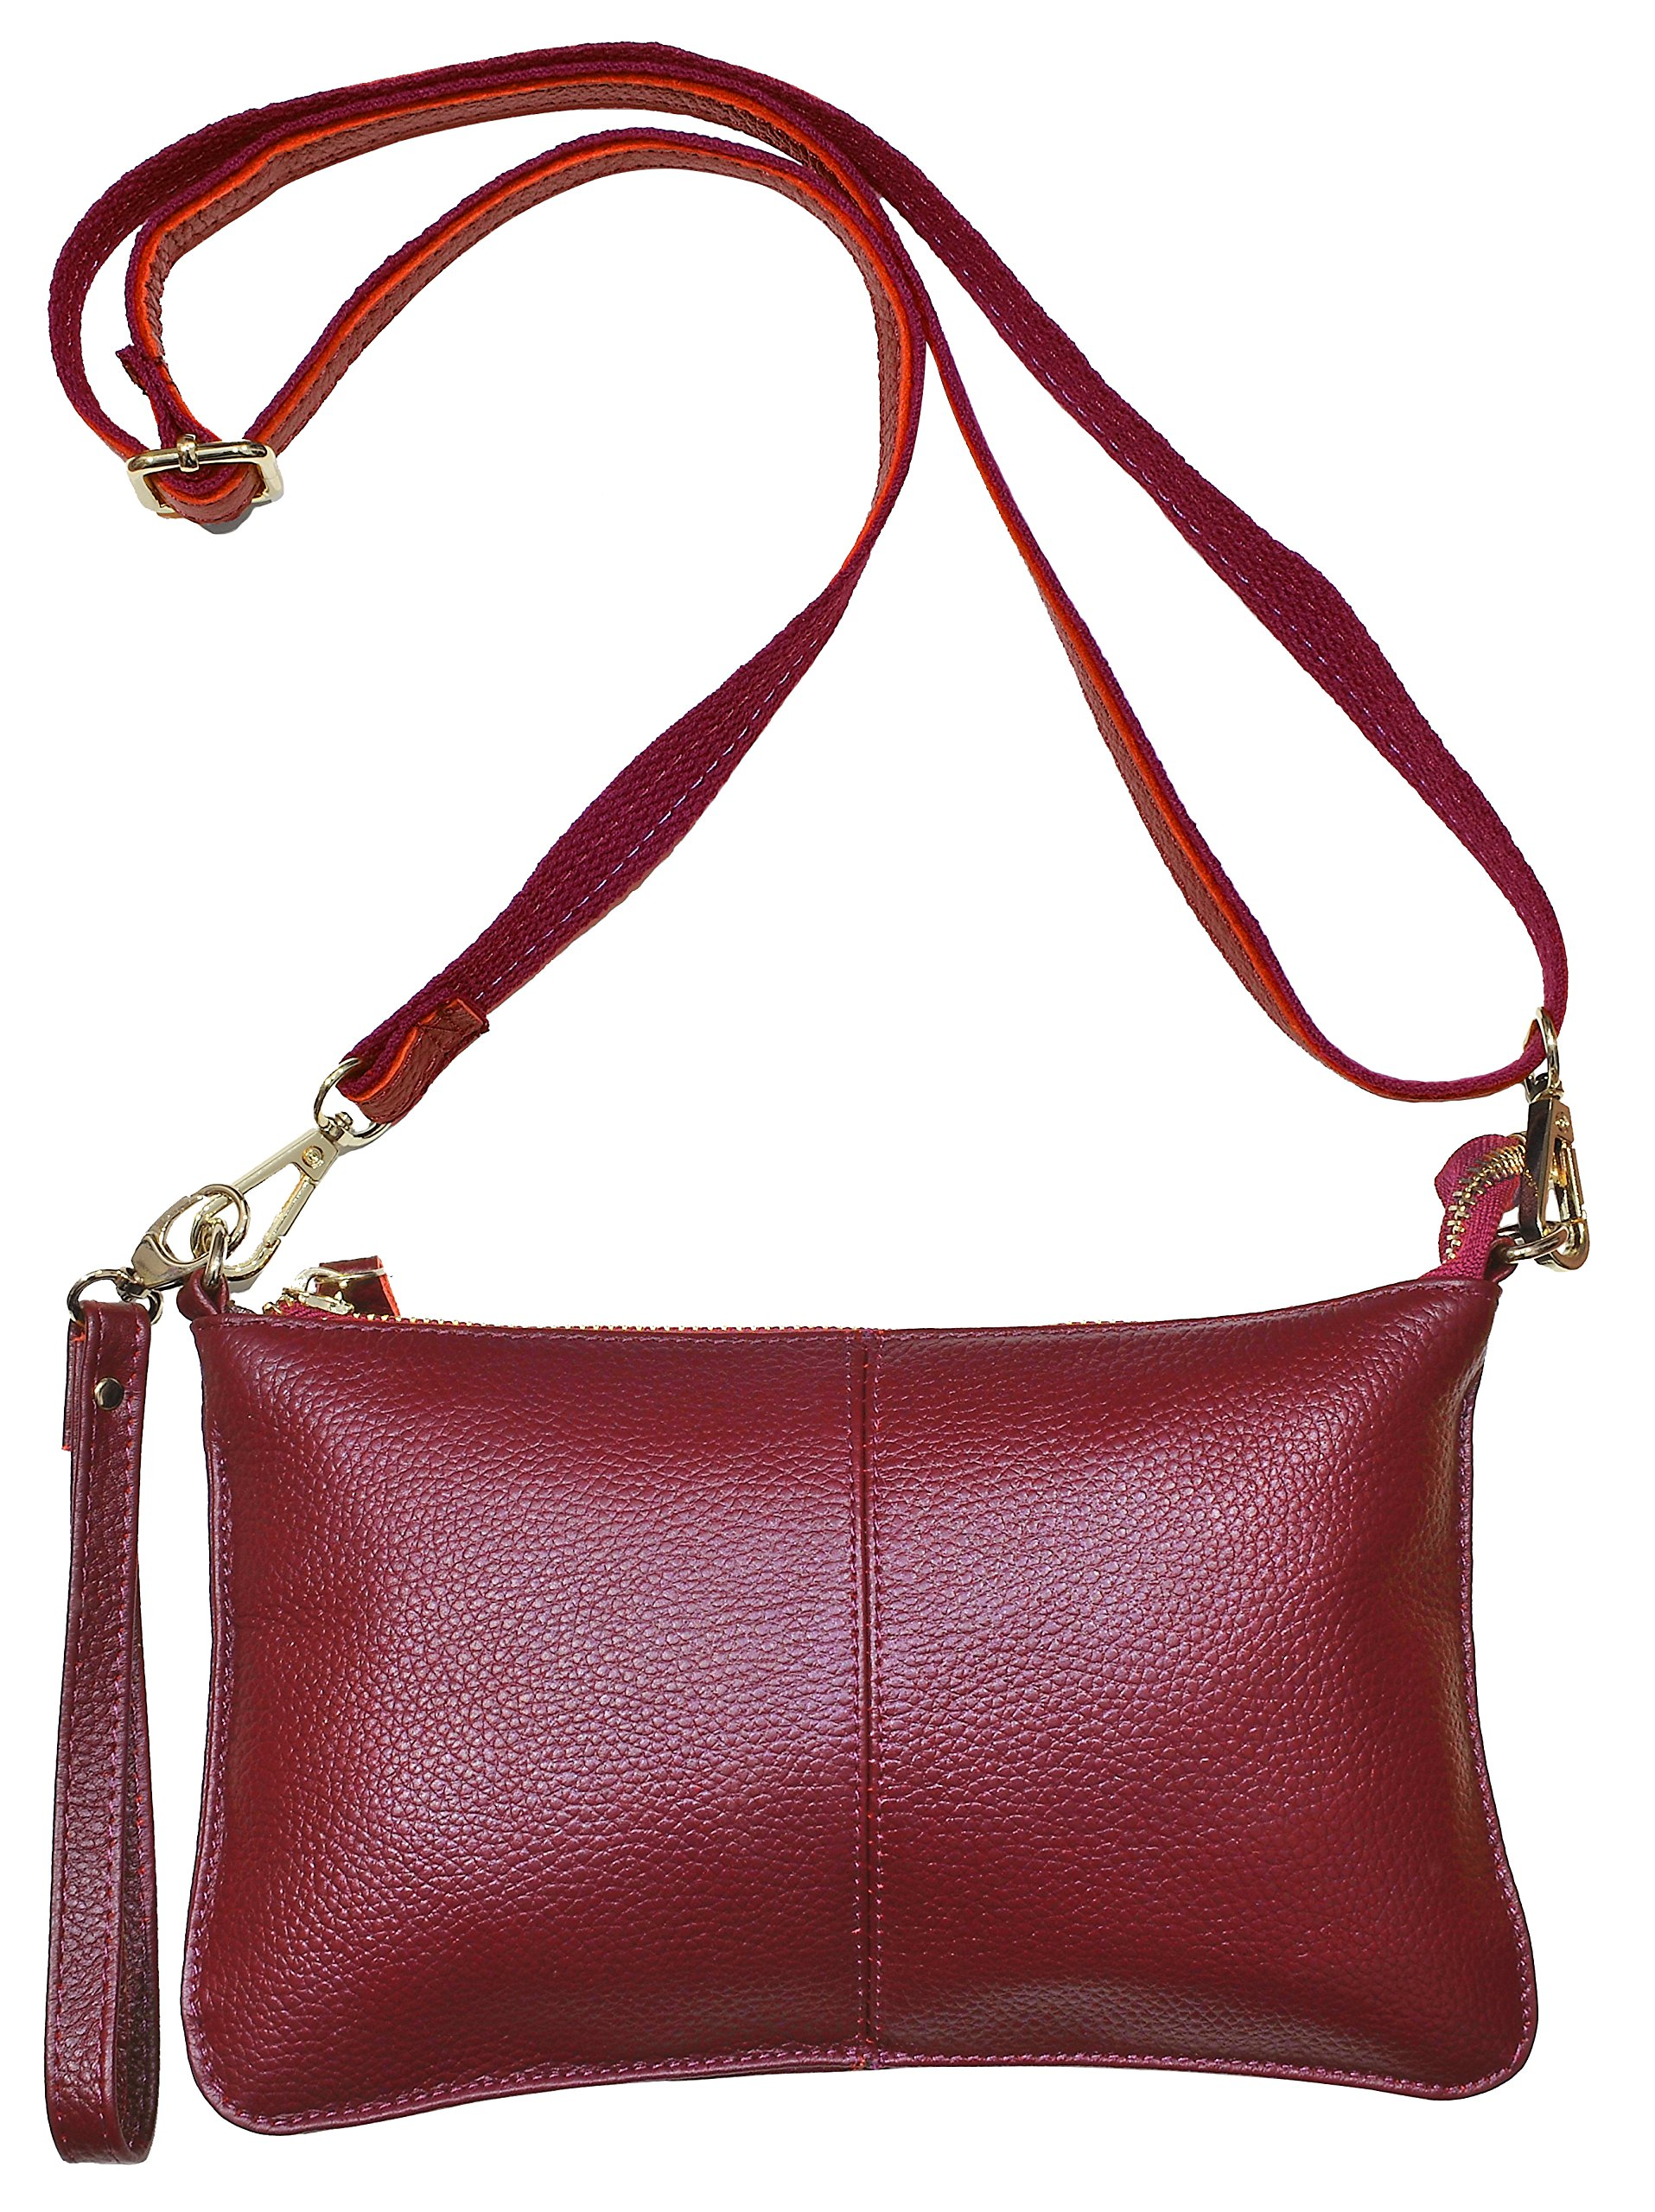 Beurlike Womens Leather Clutch Purse Wallet Small Crossbody Bag with Wristlet (Wine Red)